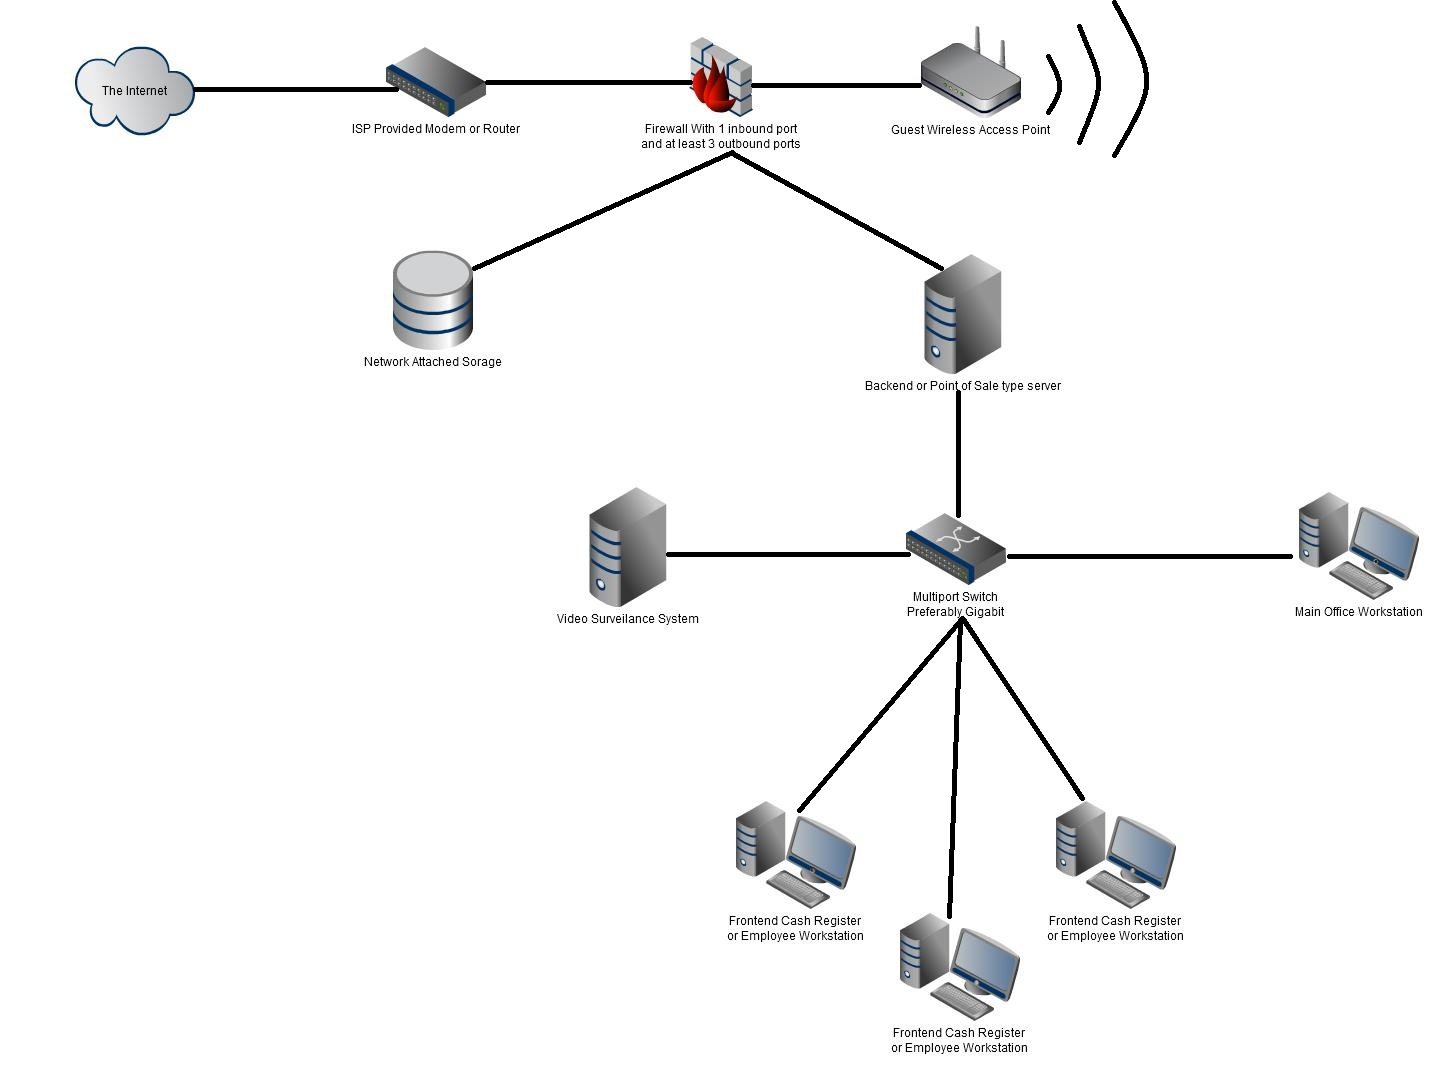 basic network setup diagram from tiger direct